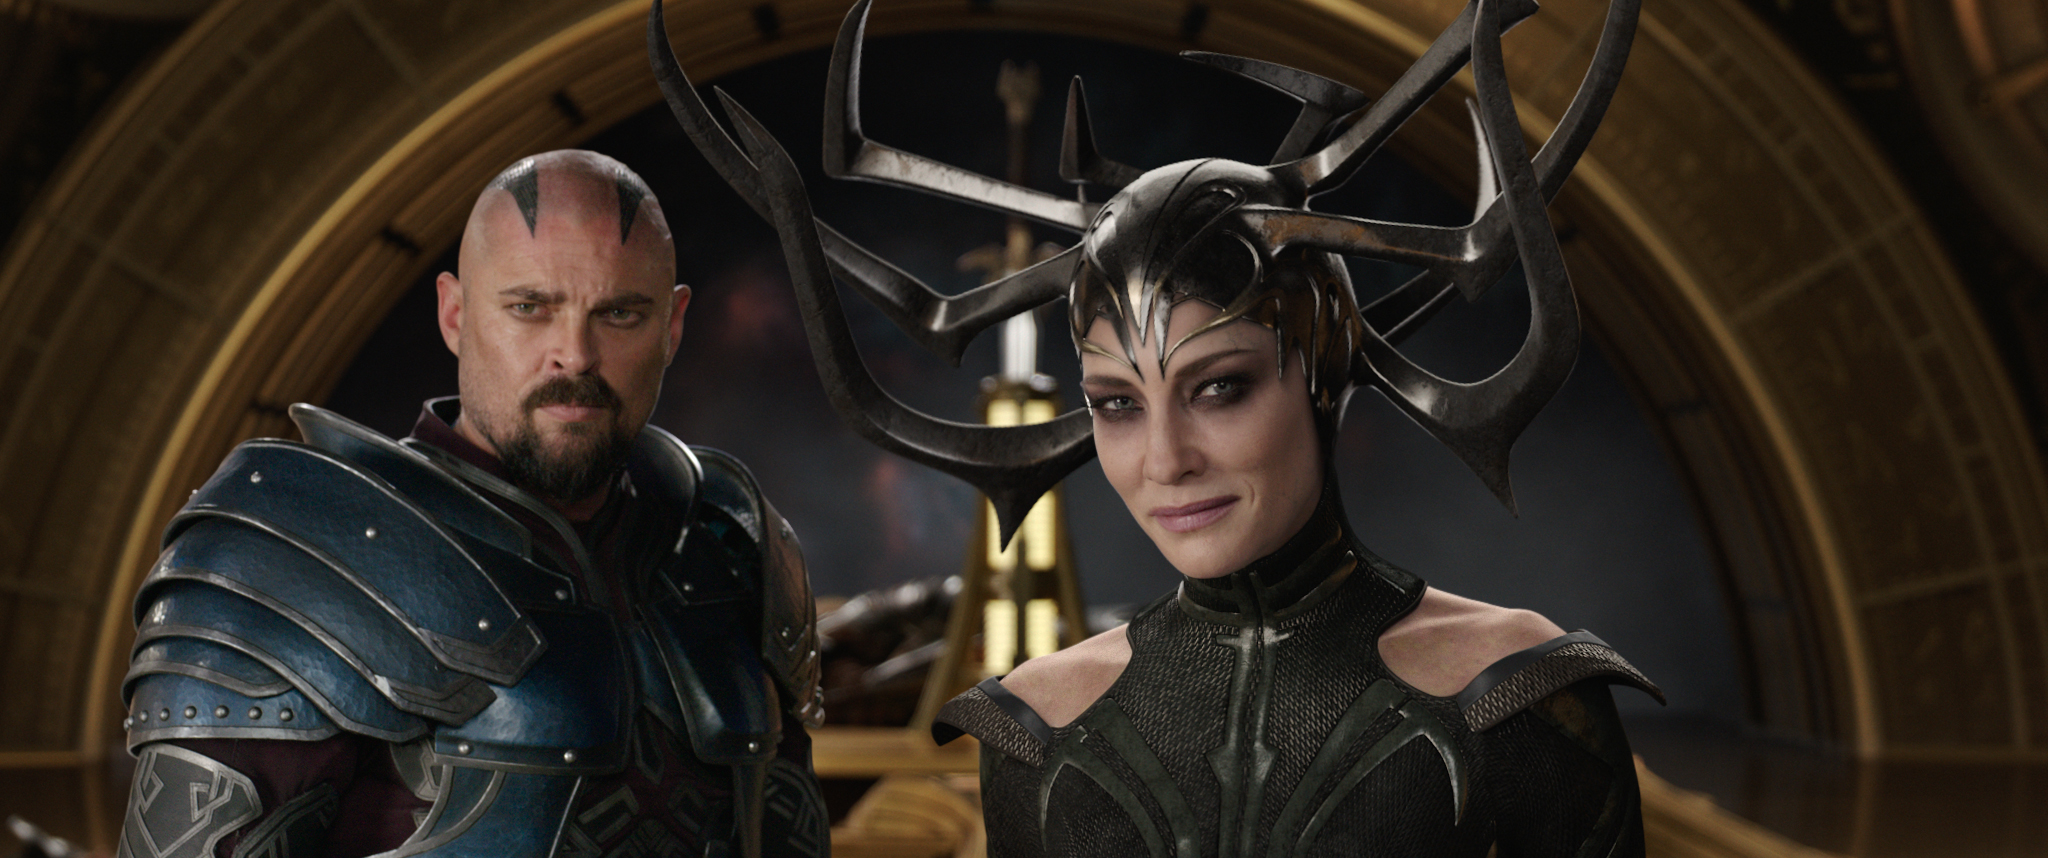 We Might Get To See Cate Blanchett's Hela Return After Thor: Ragnarok 1